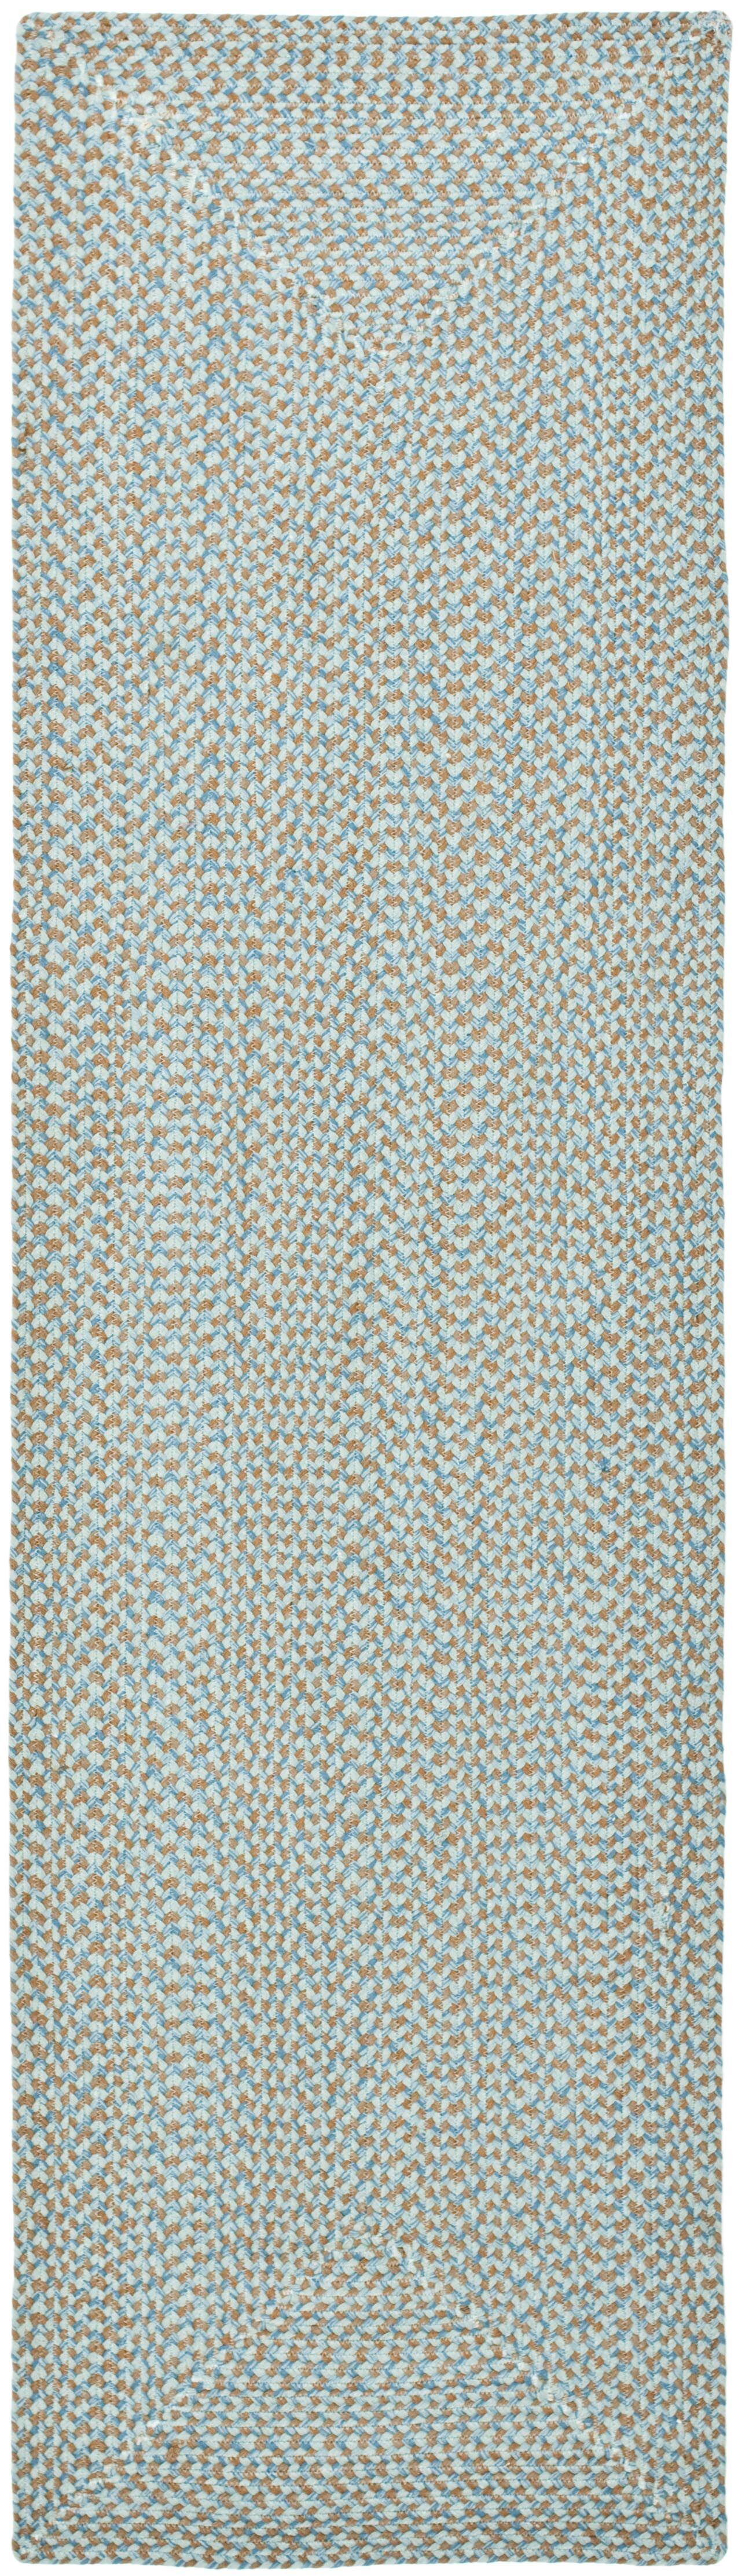 Lissie Hand-Woven Cotton Blue Area Rug Rug Size: Runner 2'3